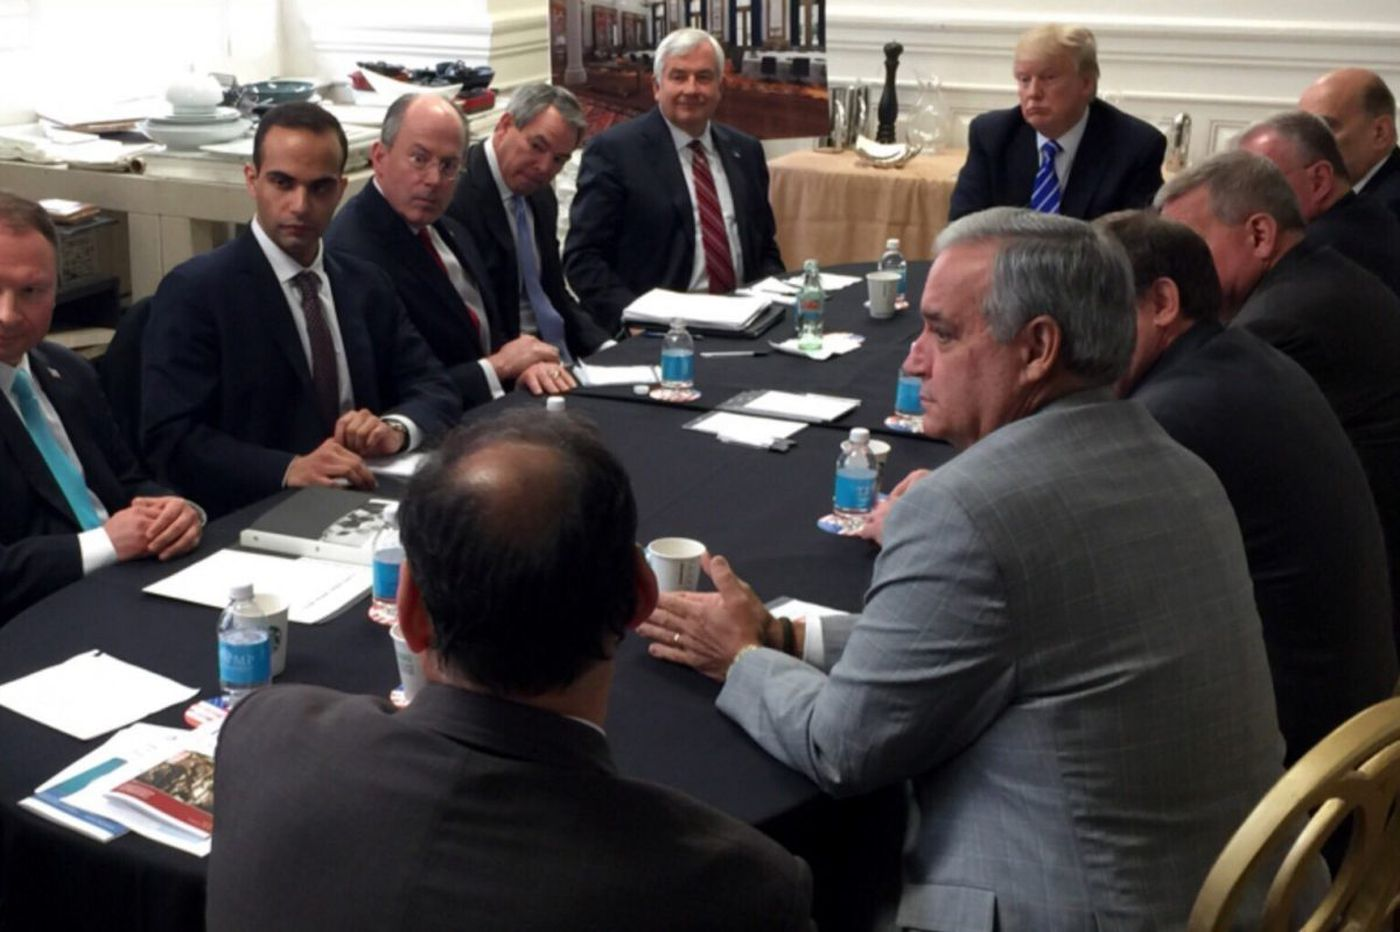 Who's who in the George Papadopoulos court documents